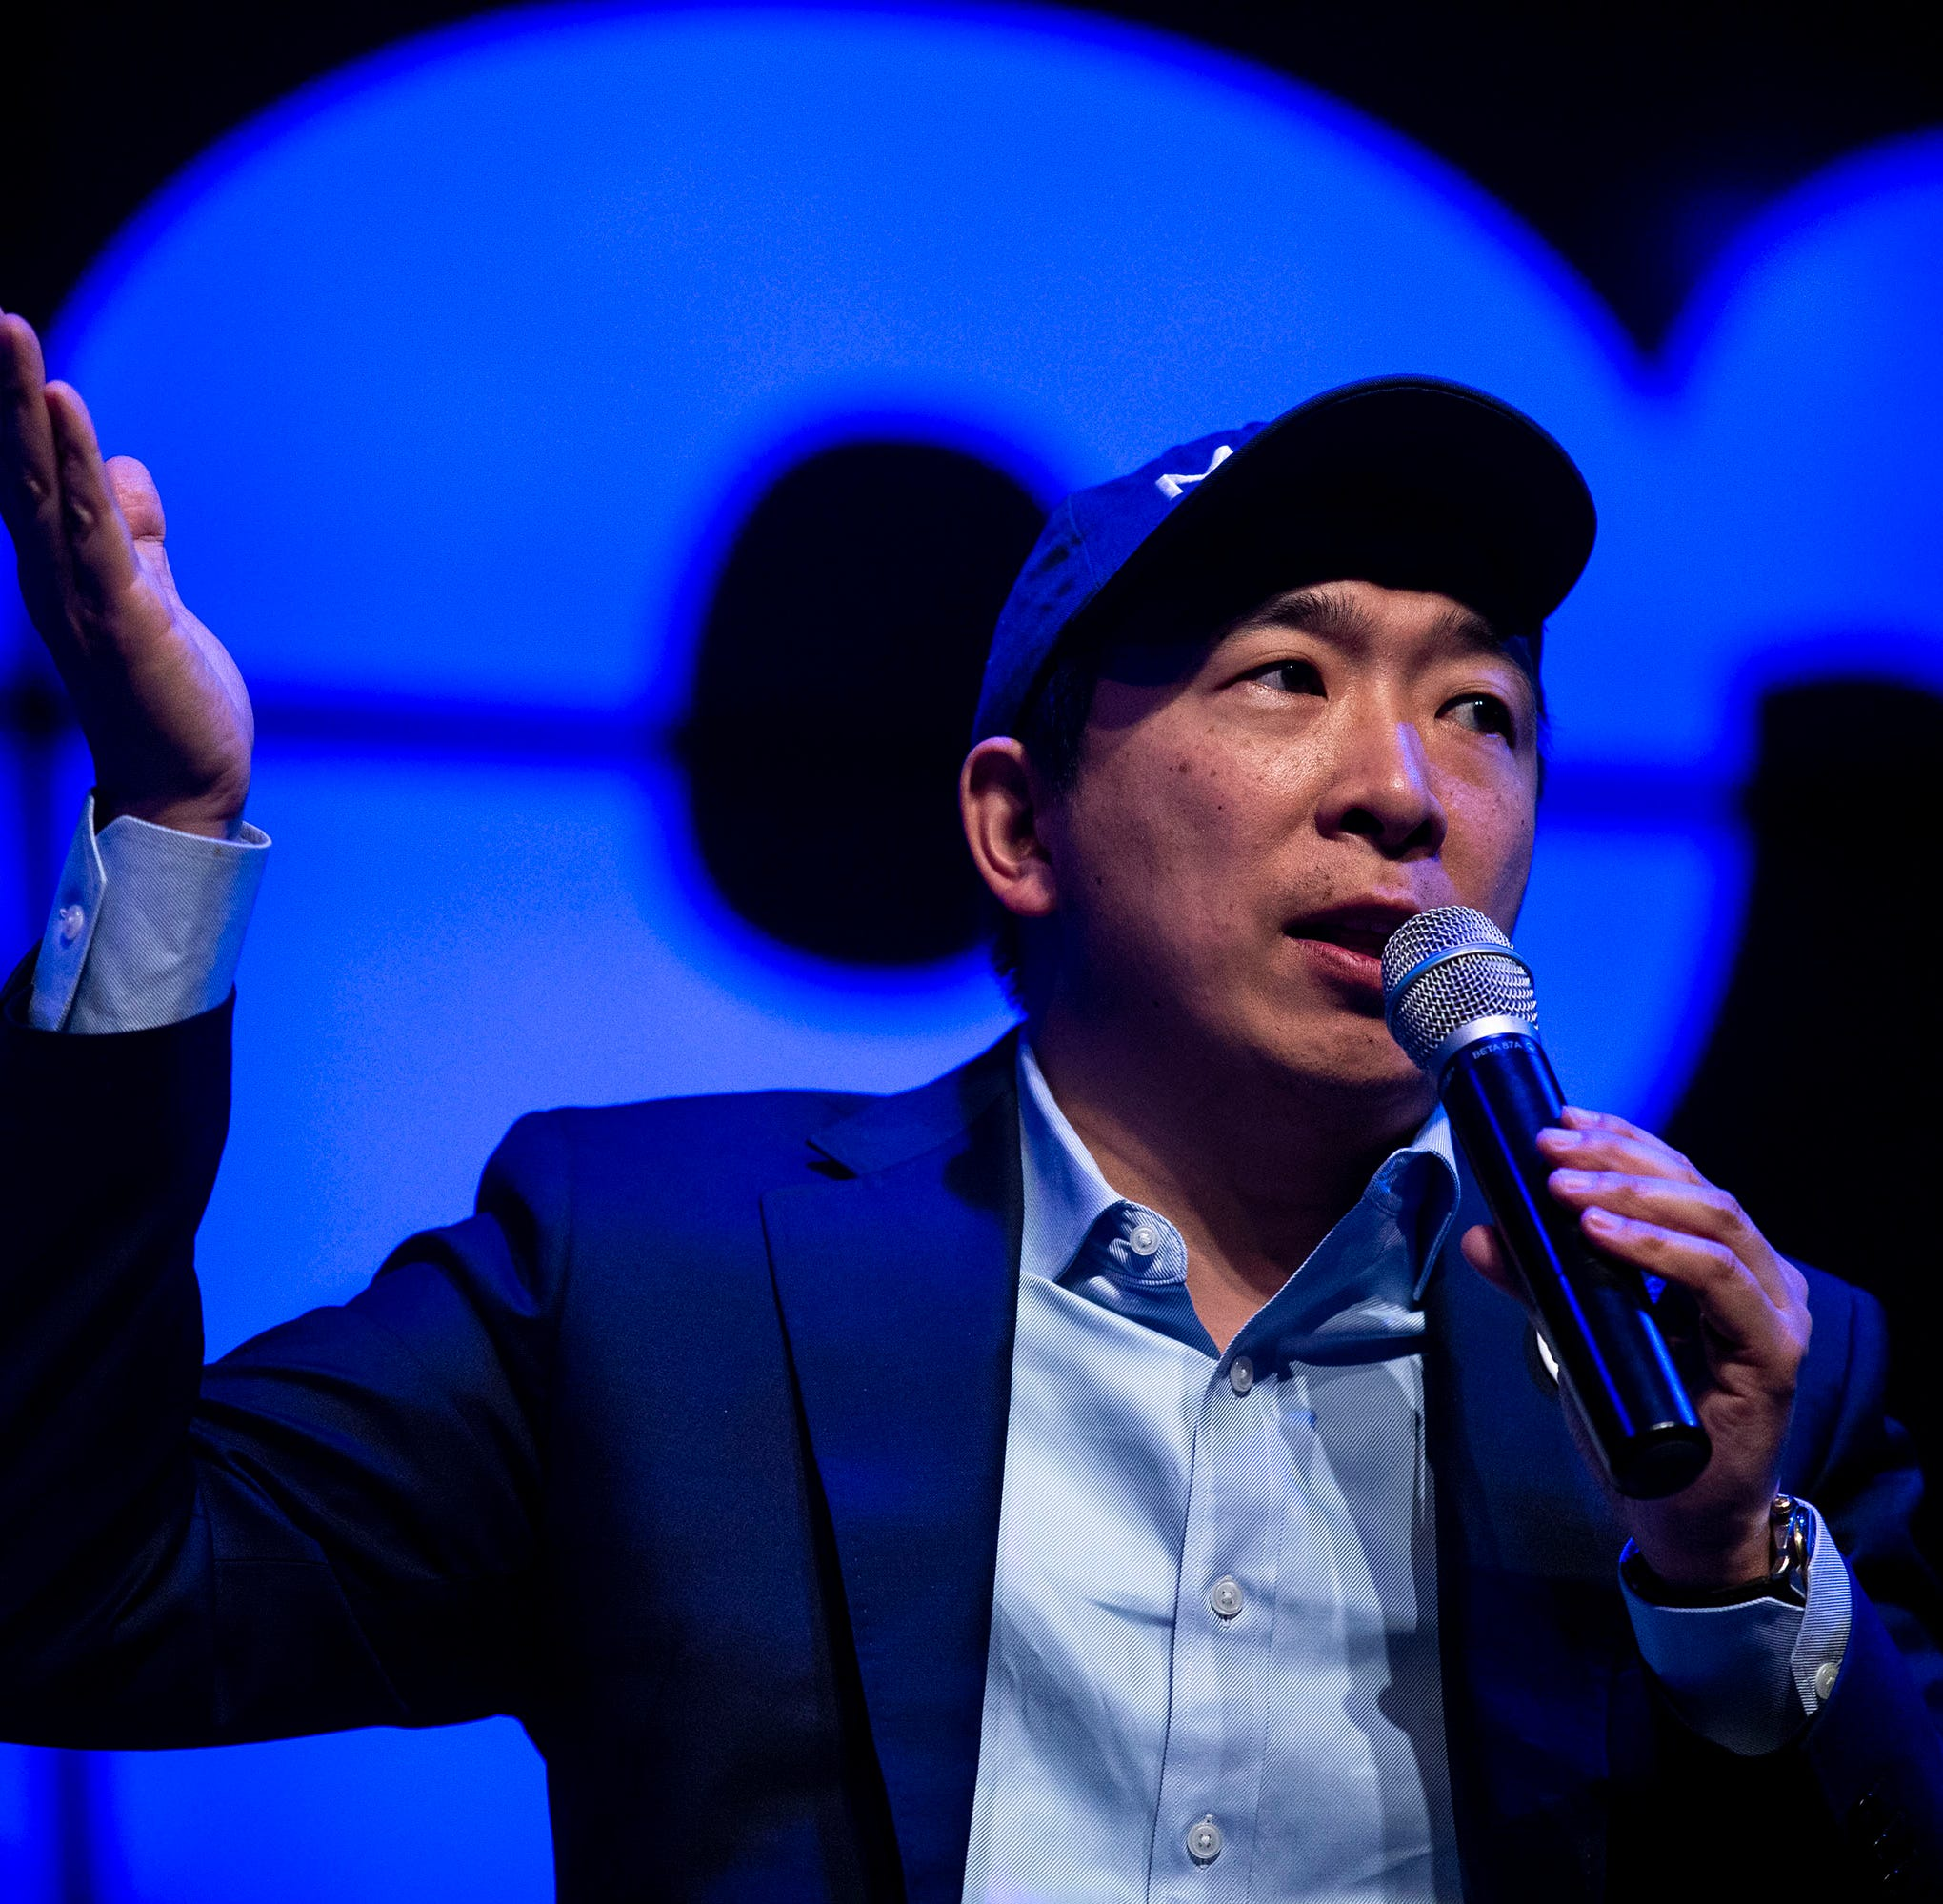 Presidential candidate Andrew Yang wants to give Americans $1,000 per month